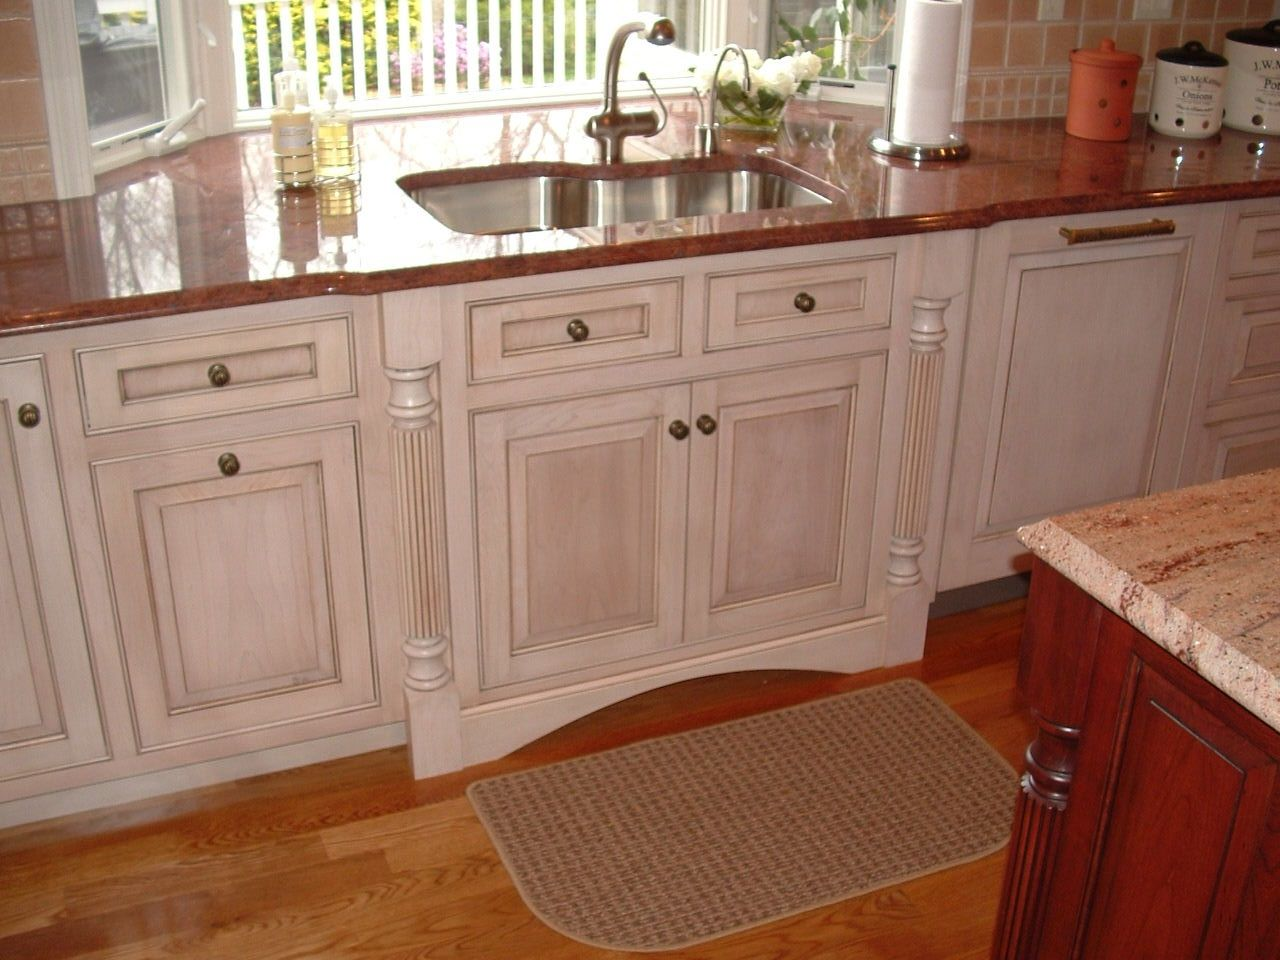 Kitchen windows; window to the countertop and extend the counter ...